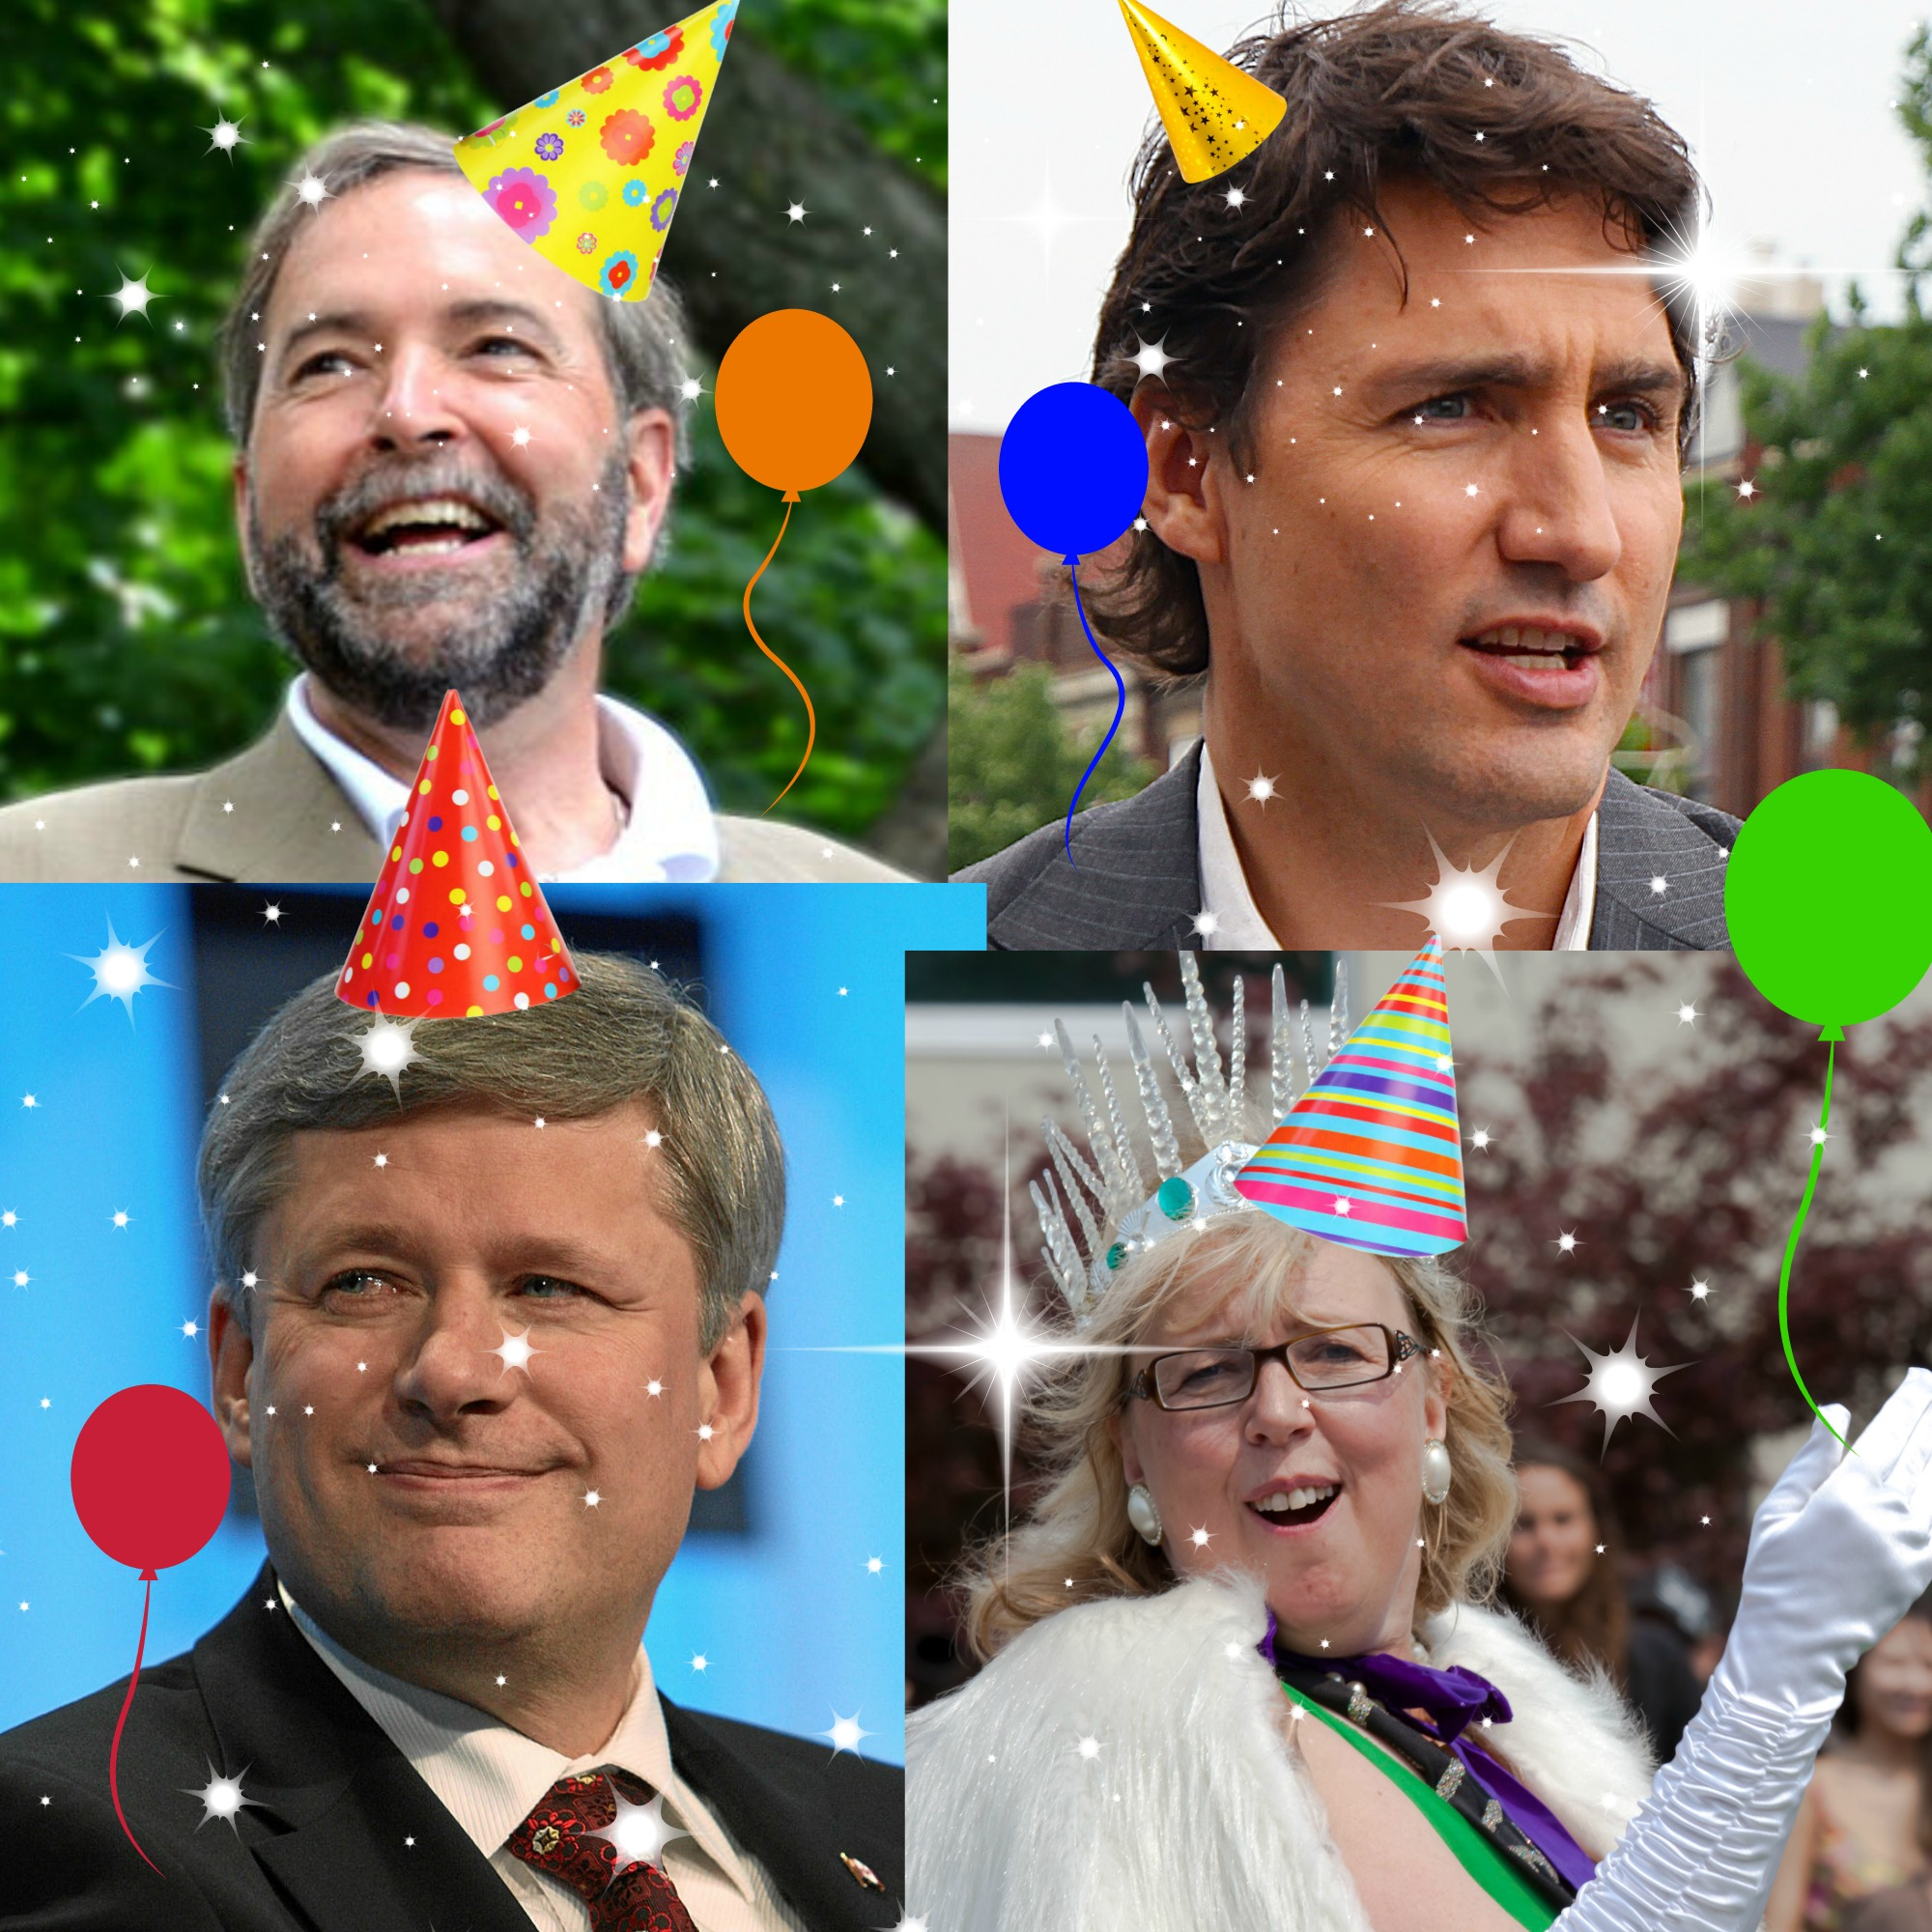 Images of the federal election candidates with party hats and balloons.